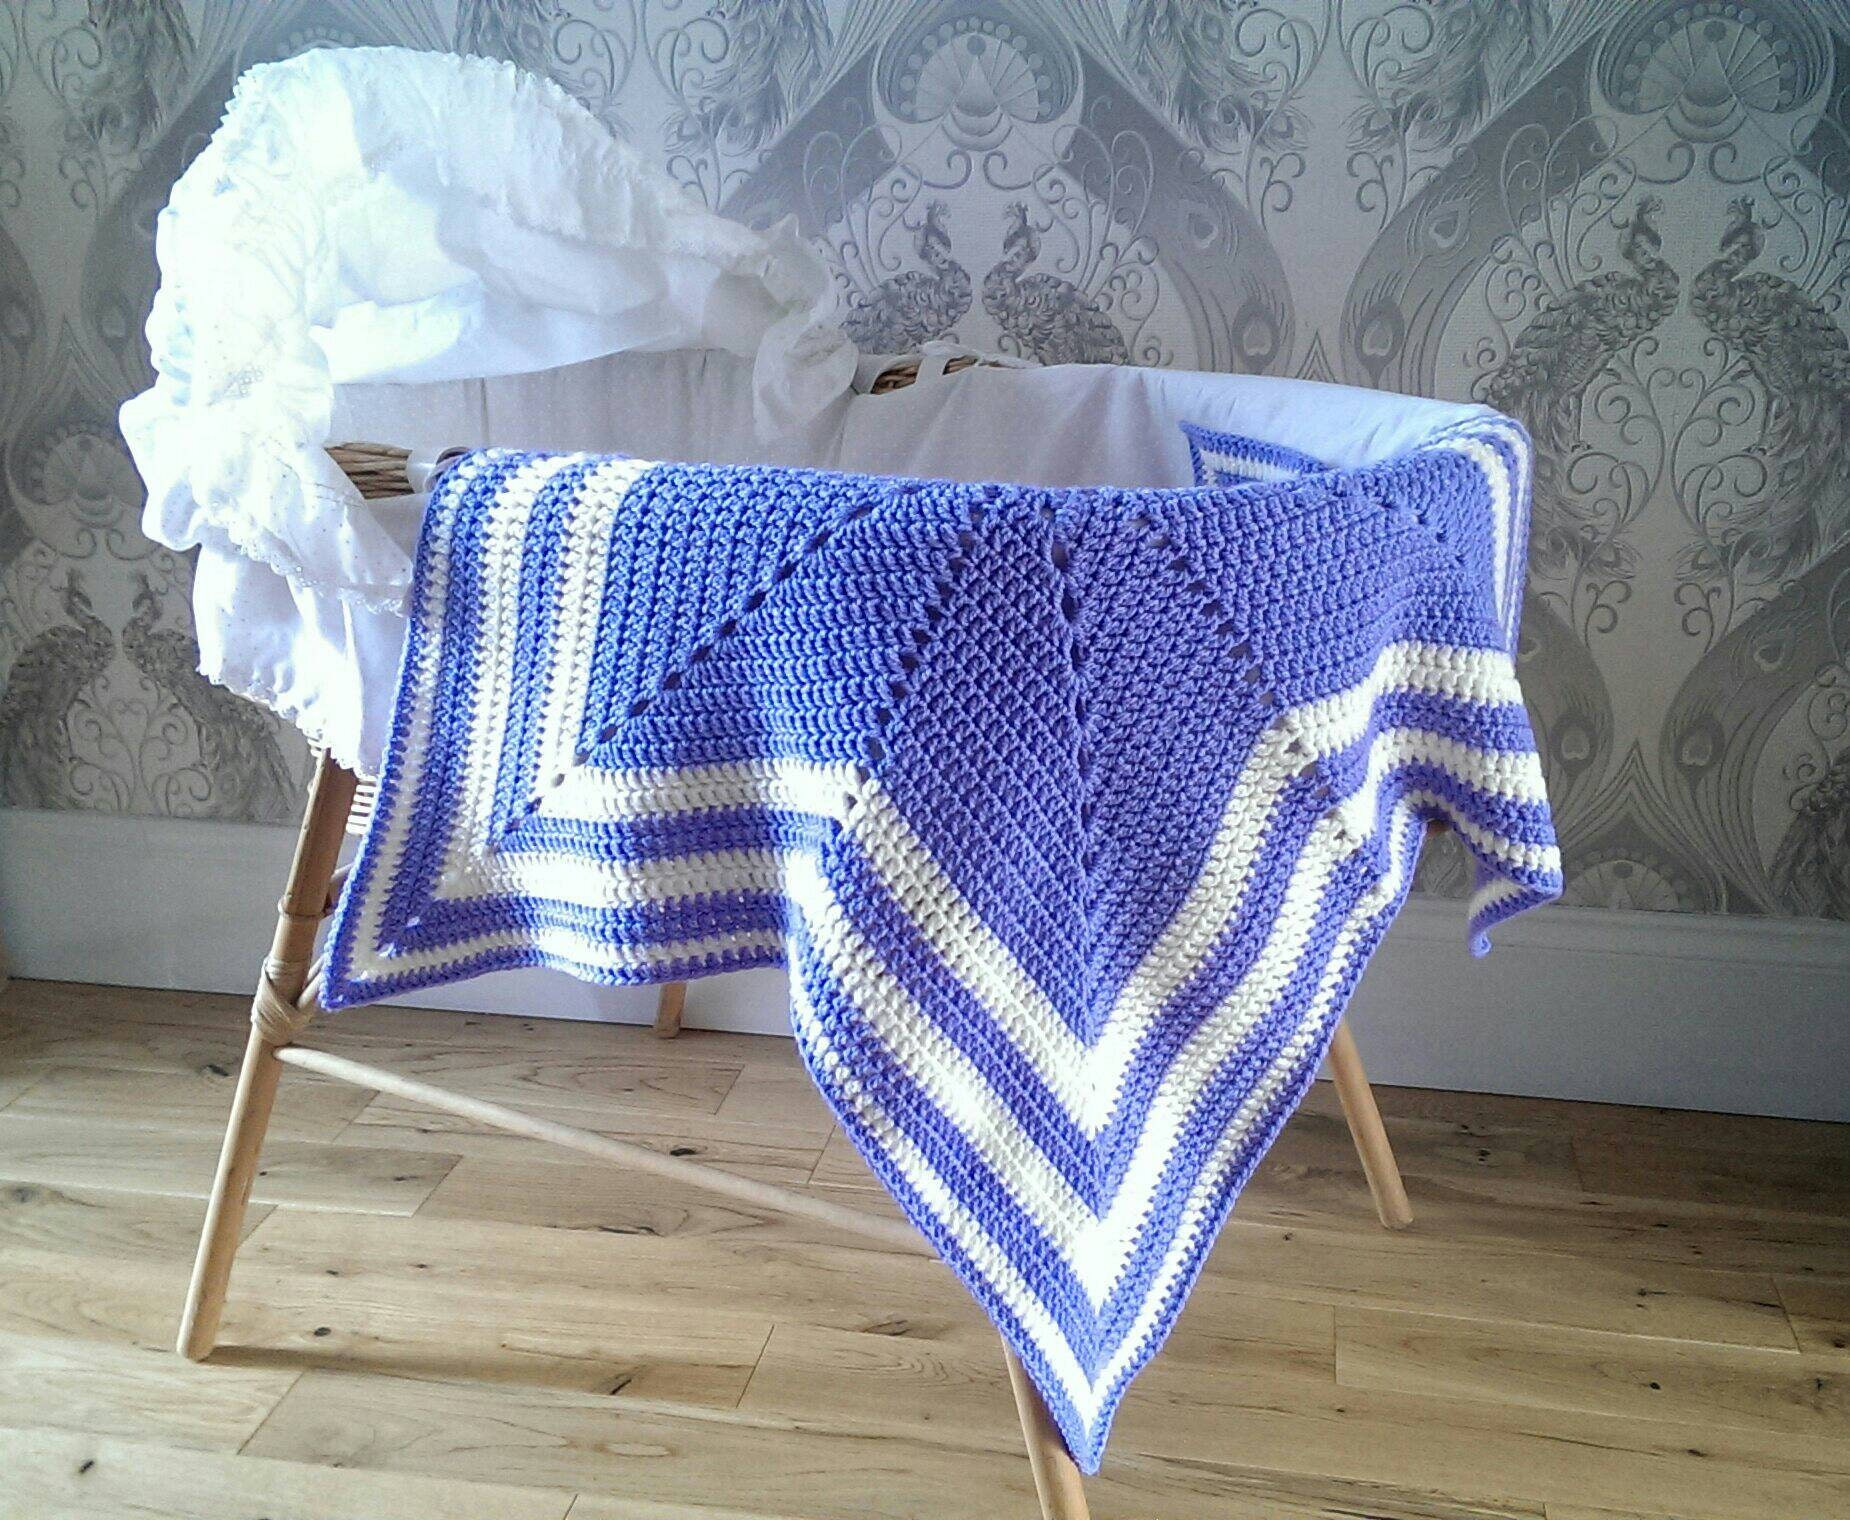 star blanket  crochet star blanket  baby blanket  baby shower  baby gifts  baby girl  cream blanket  vegan